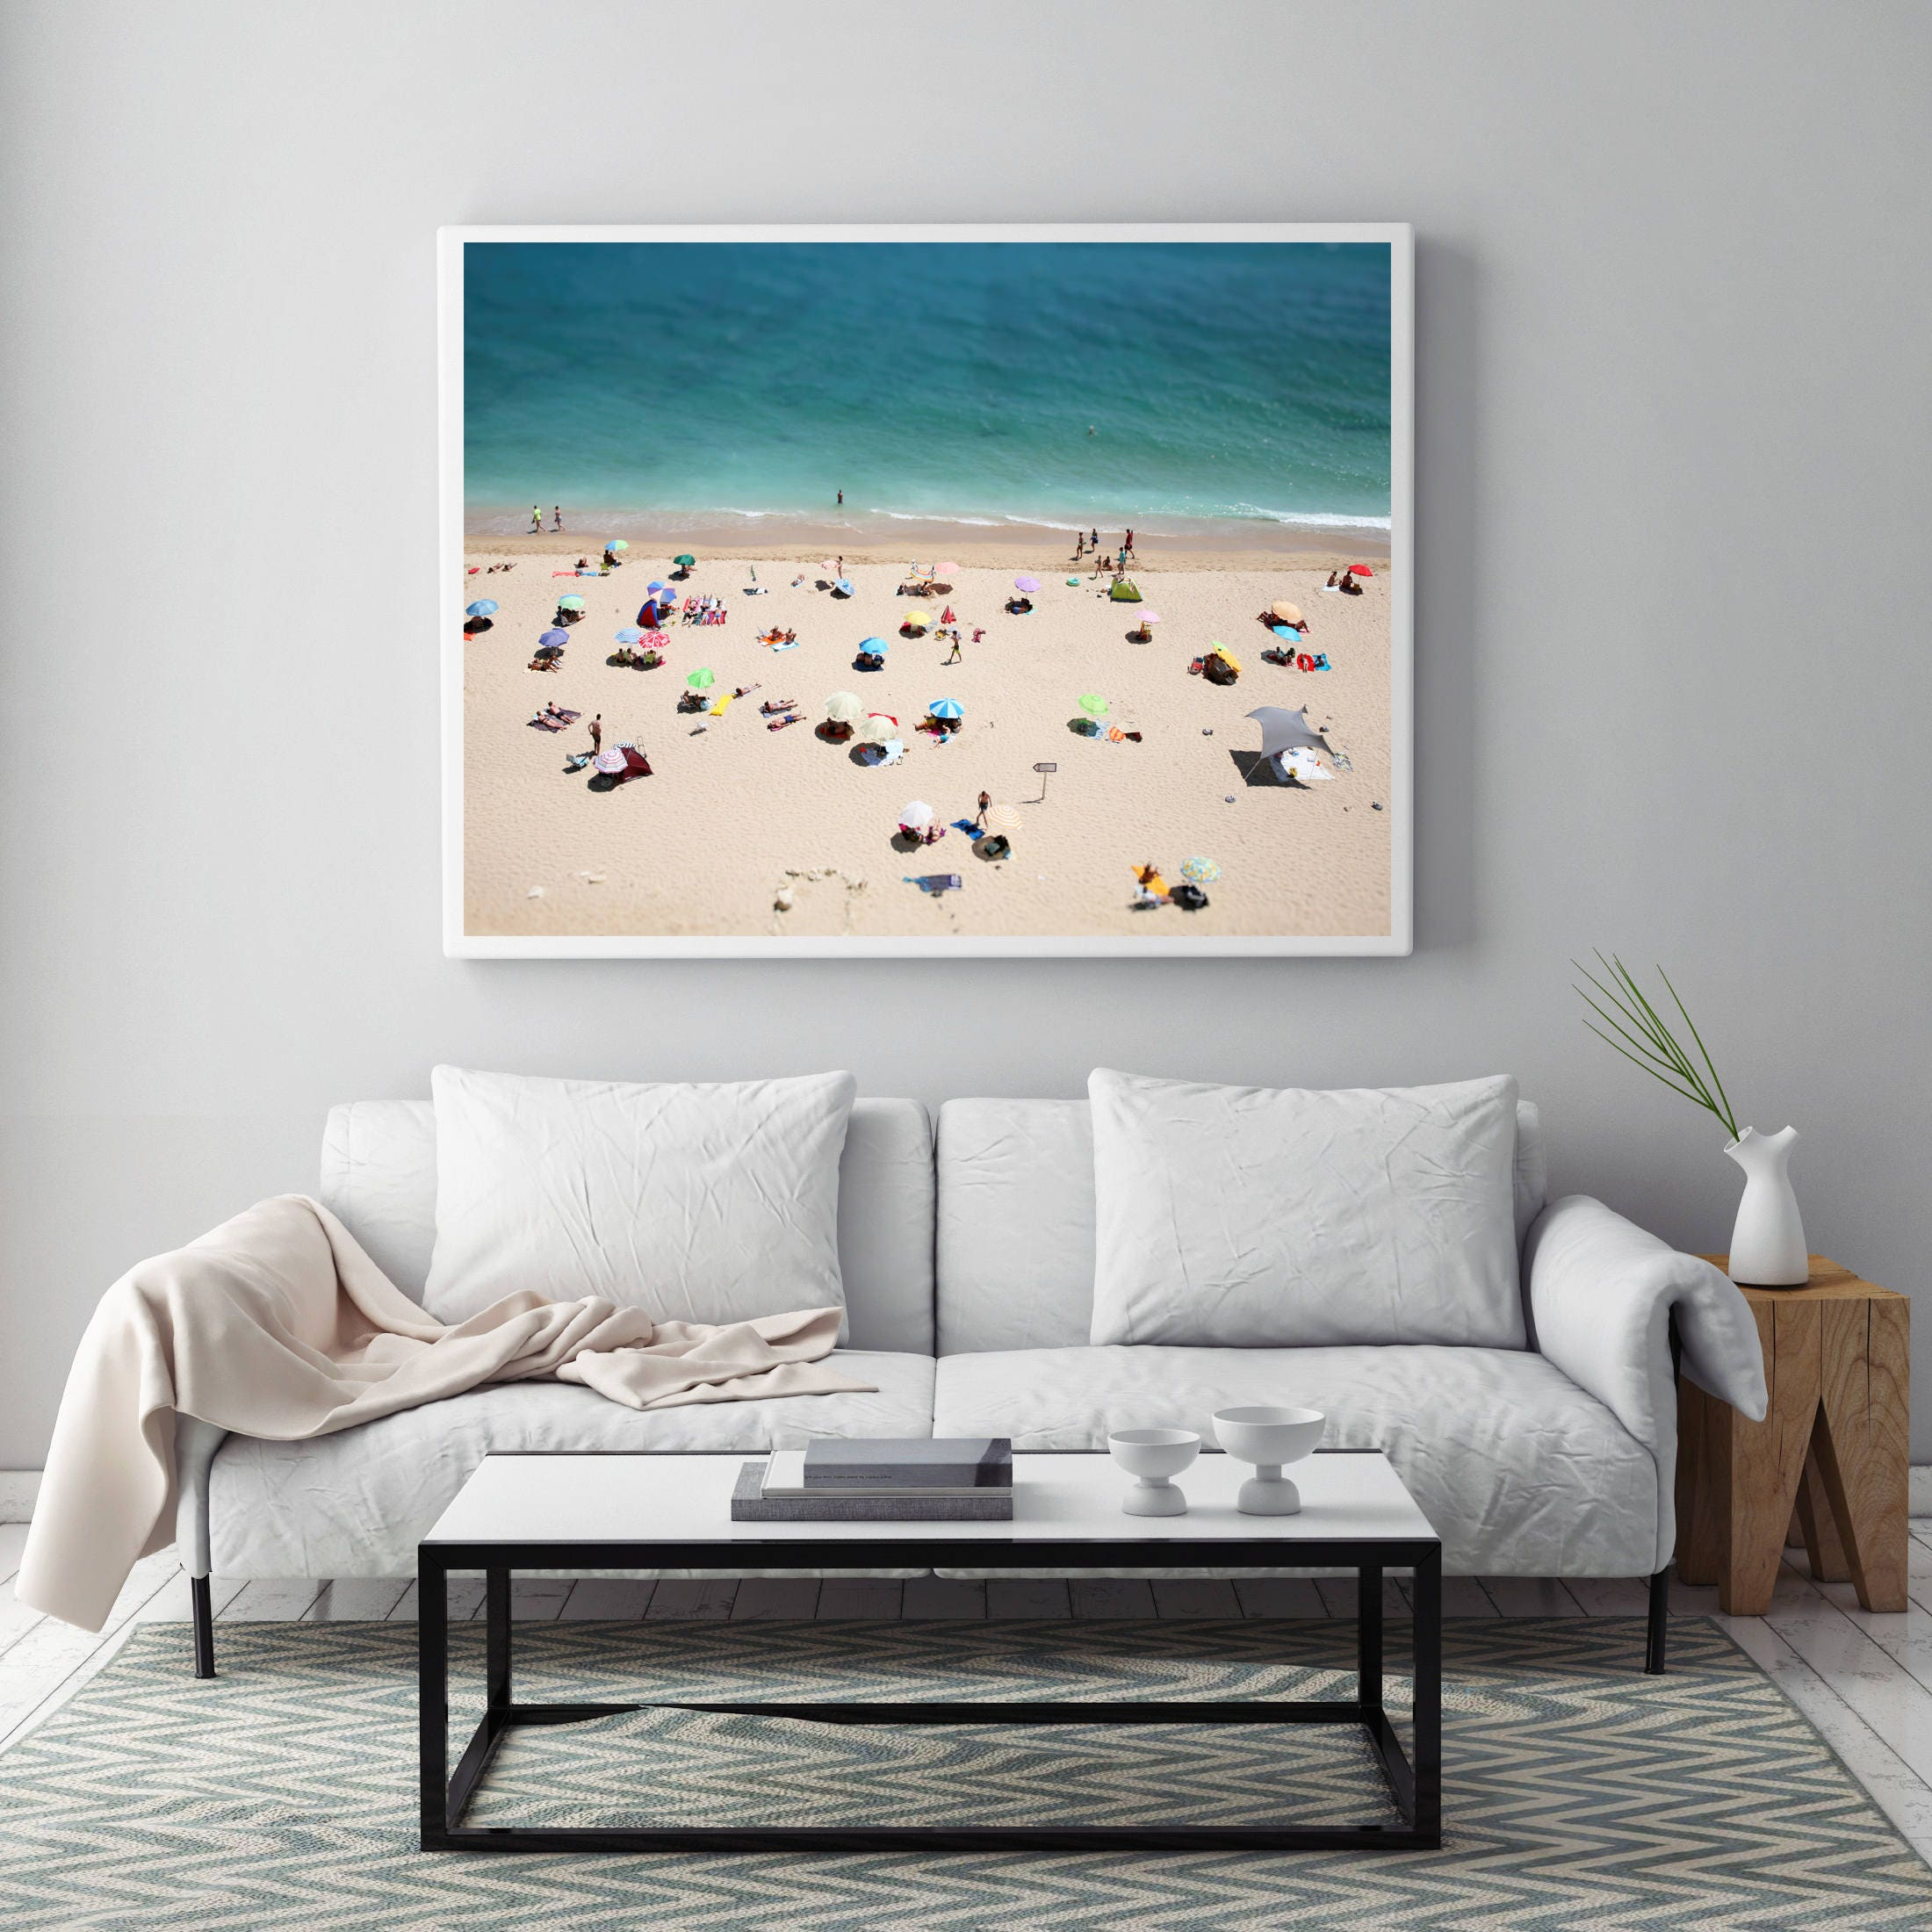 Modern Wall Art, Beach Coastal Decor, Photography, Digital Download, People  On The Beach, Wall Art, Ocean Decor, Landscape Photography, Sea